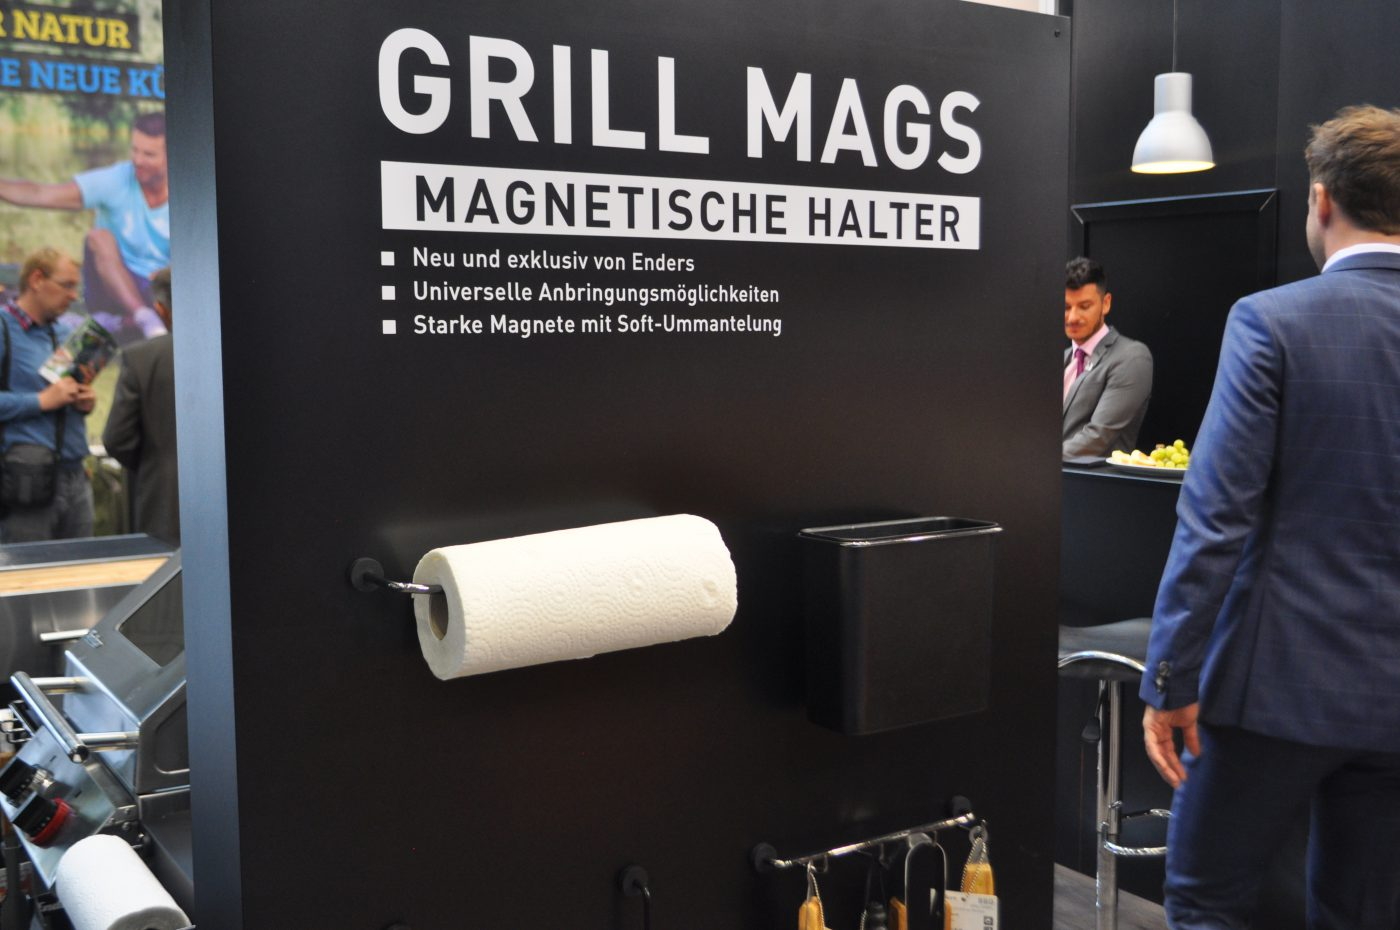 Grill Mags by Enders – Spoga 2016